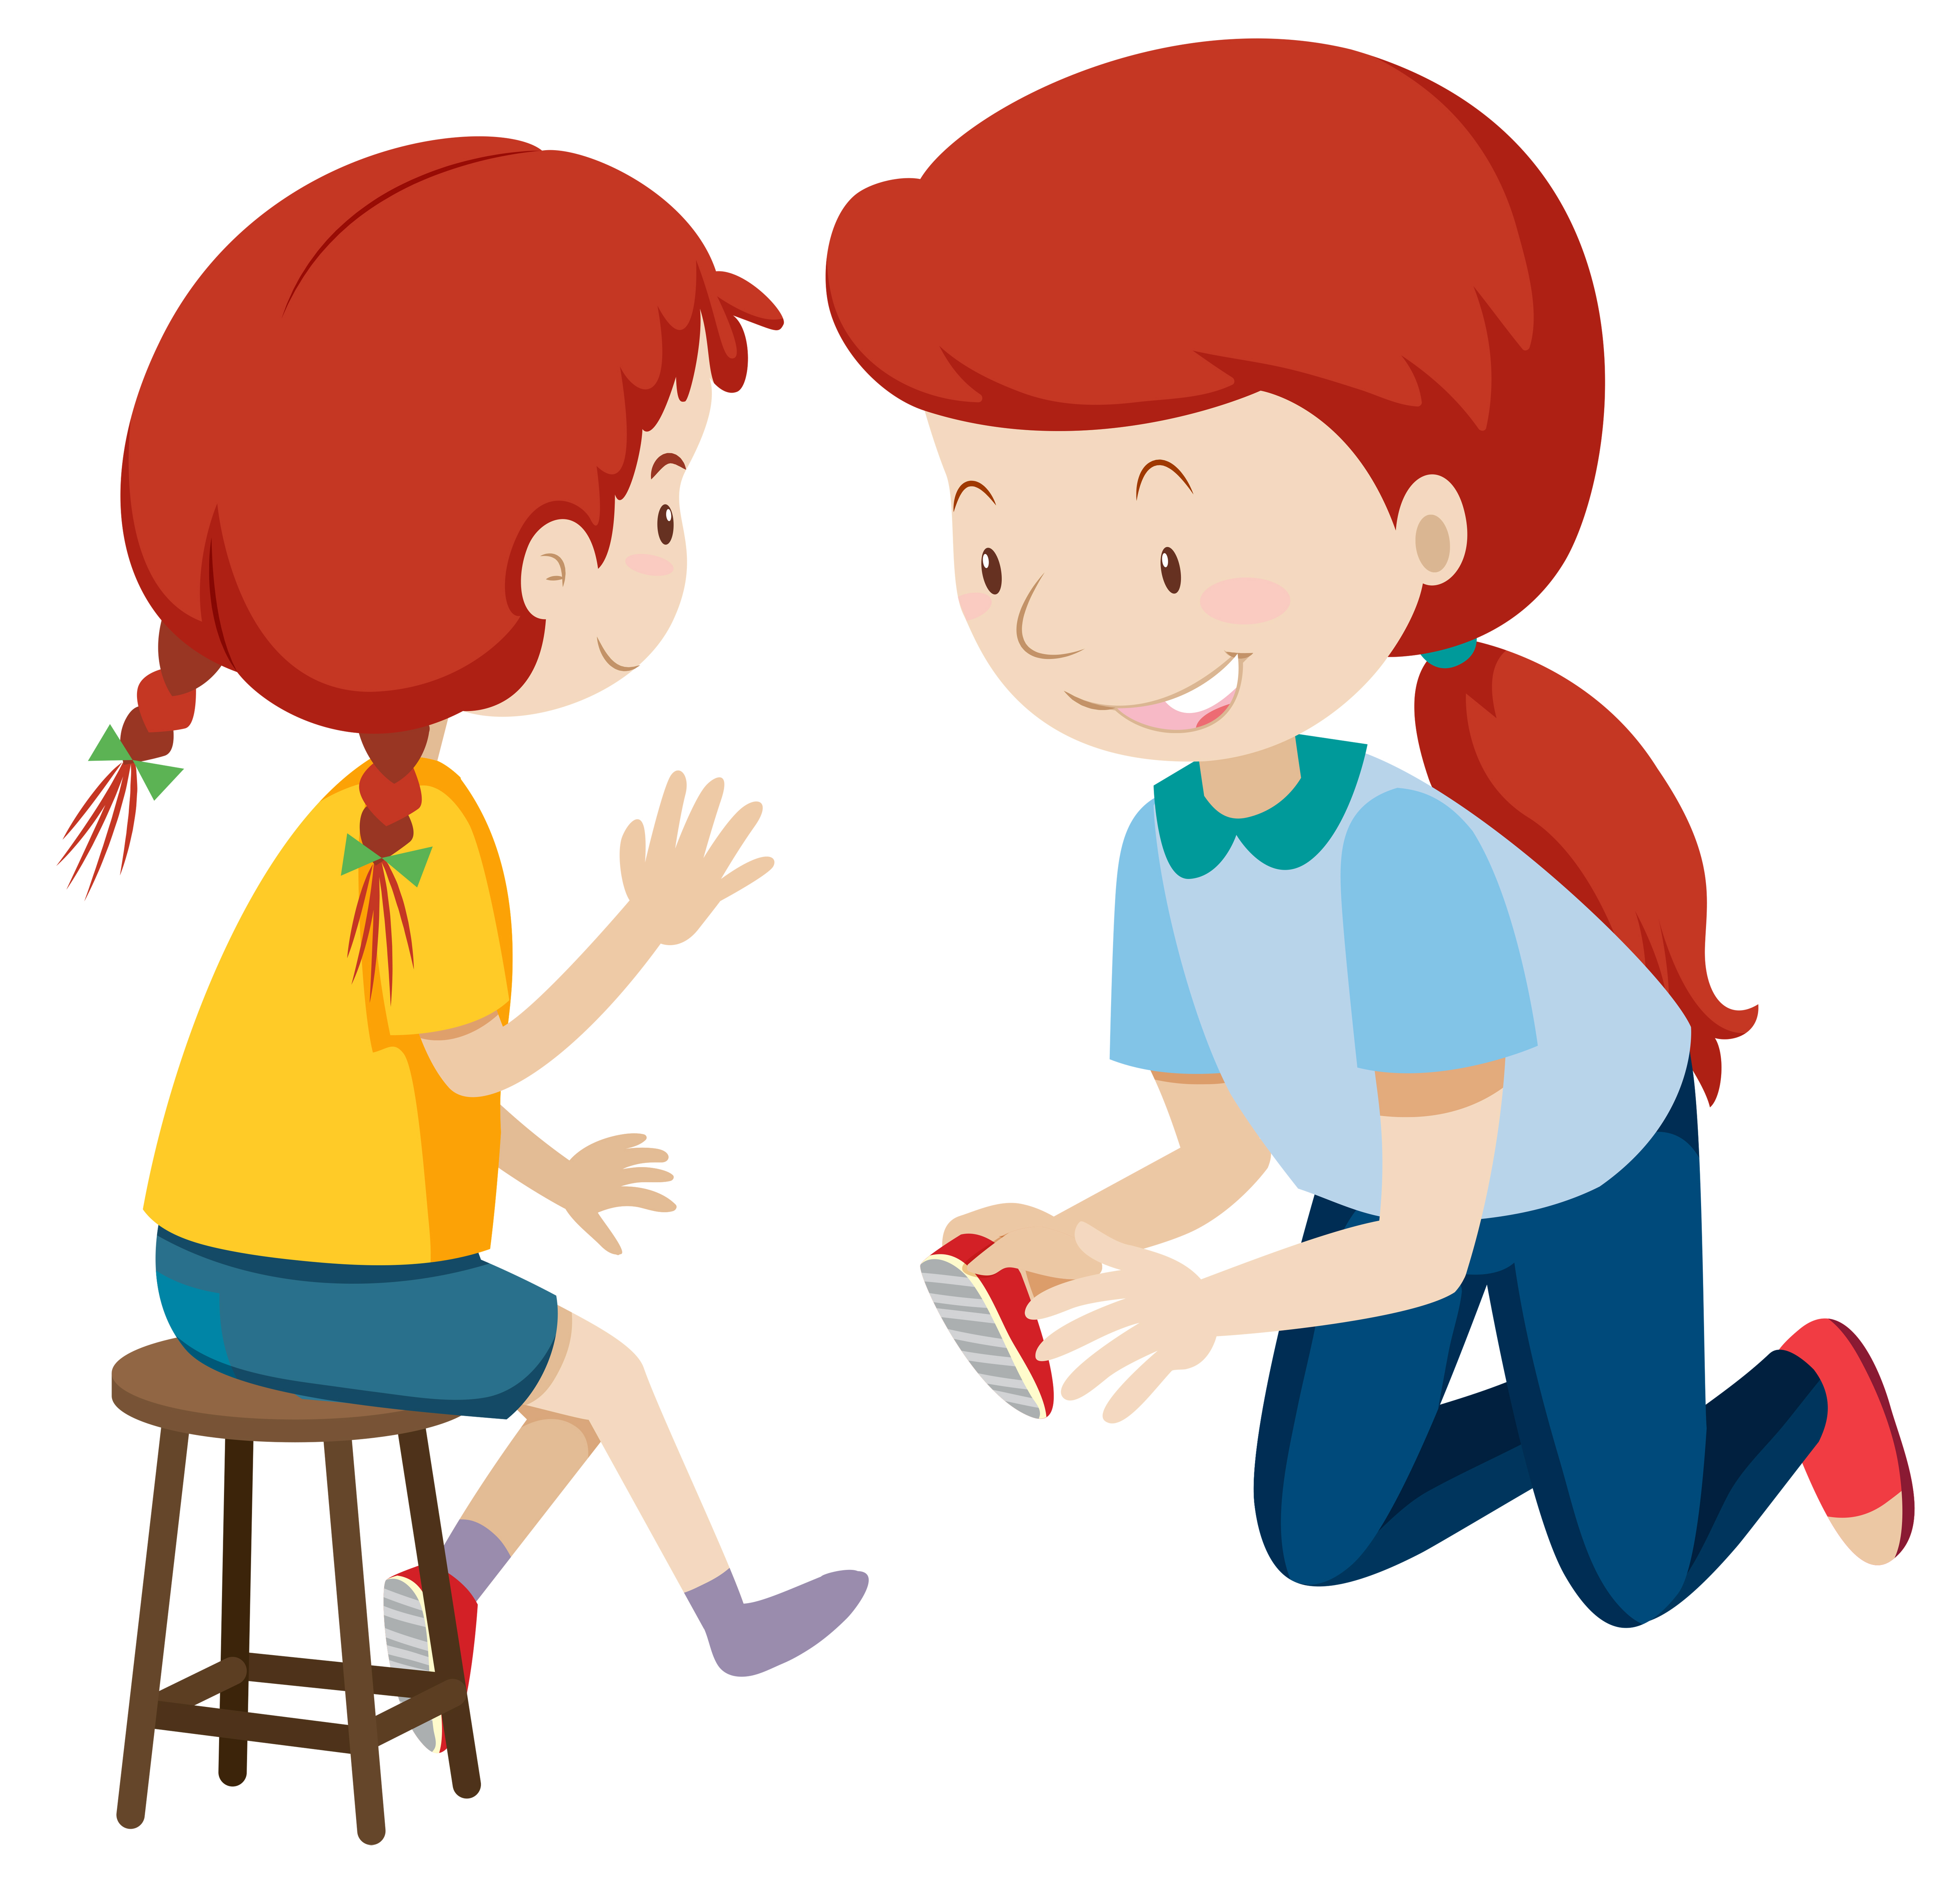 Mother helping child put on shoes - Download Free Vectors ...